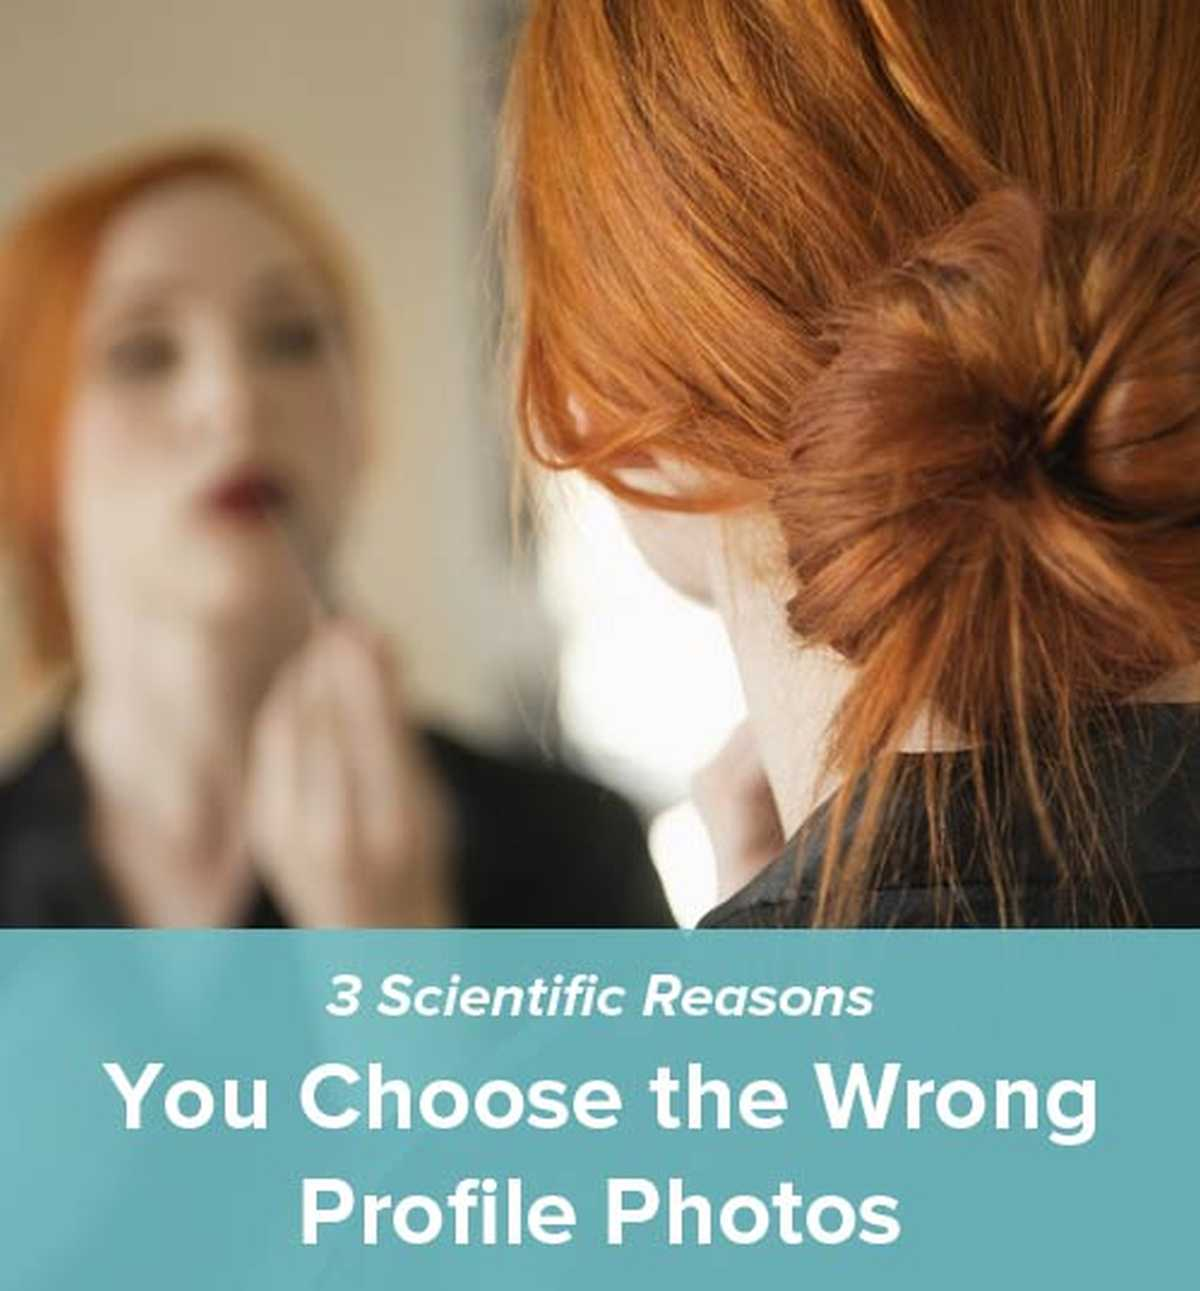 When it comes to judging photos of ourselves, the science is undeniable. You are not as good as you think.